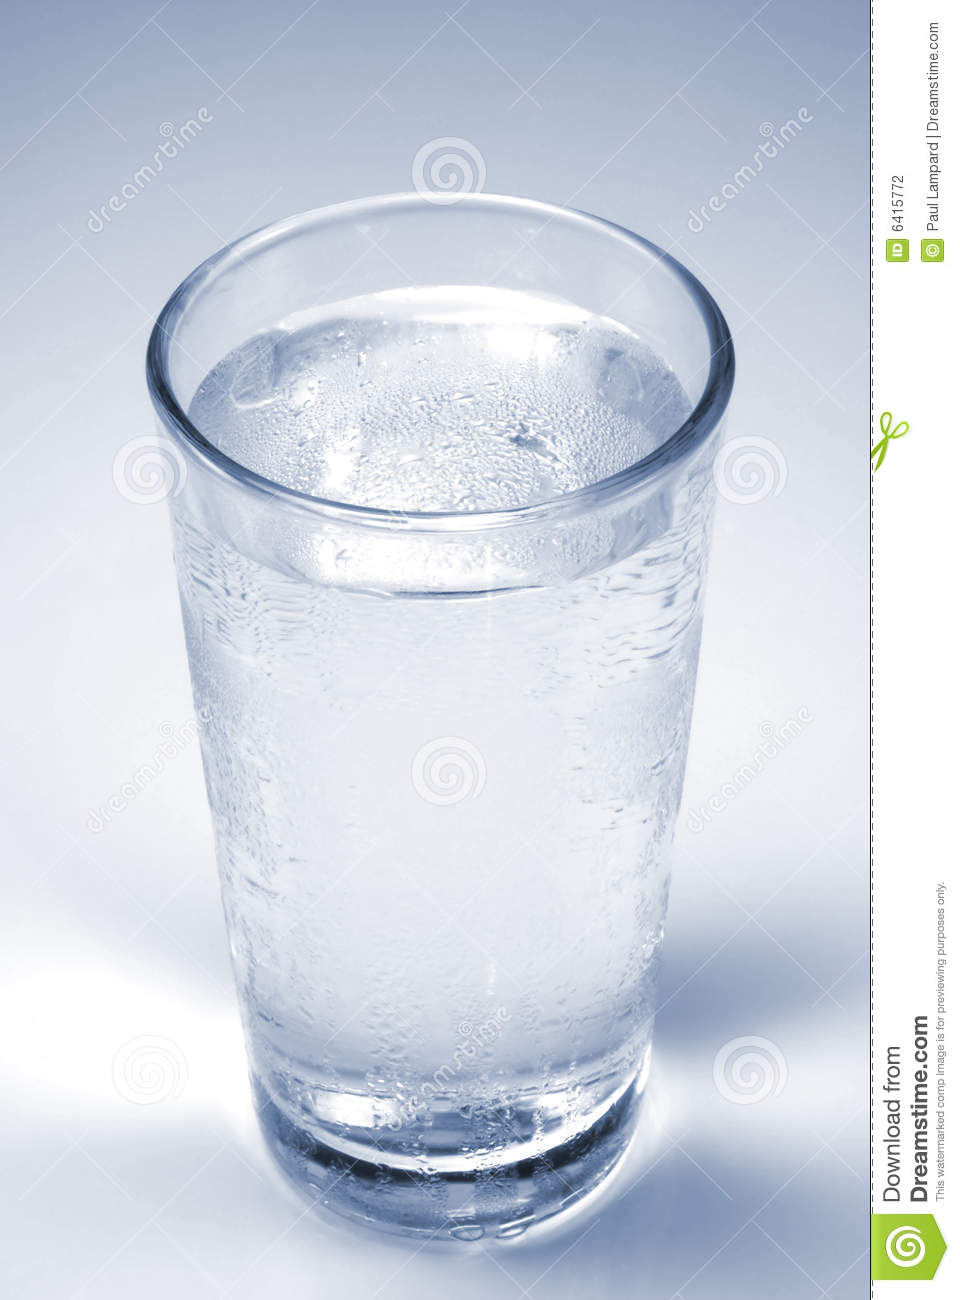 Cold Glass Of Water Stock Photography - Image: 6415772